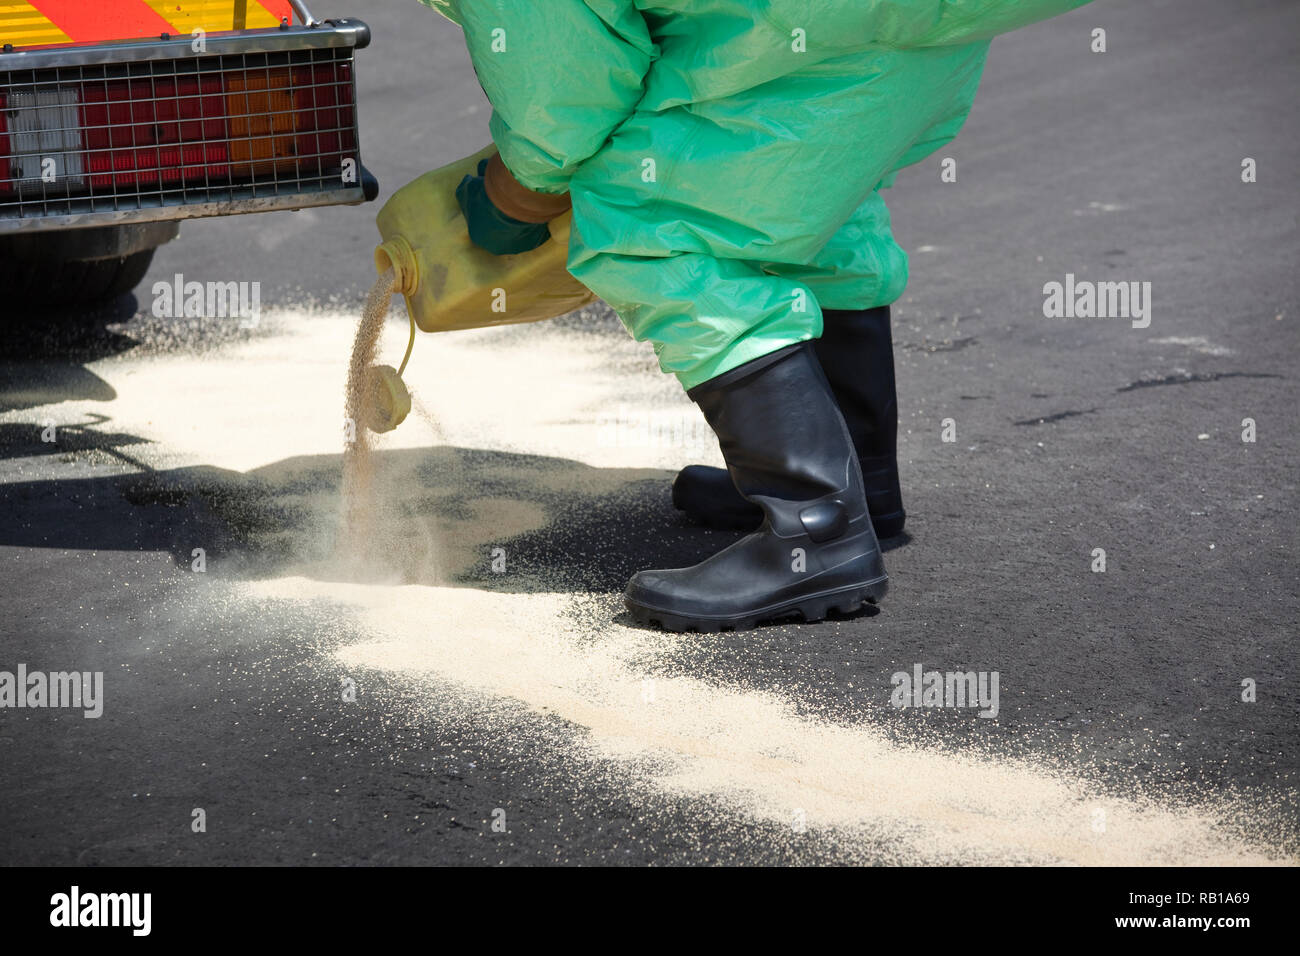 Man in protective gear cleaning up after chemical disaster. The inflatable gear also protects against contamination with radioactive particles, agains Stock Photo